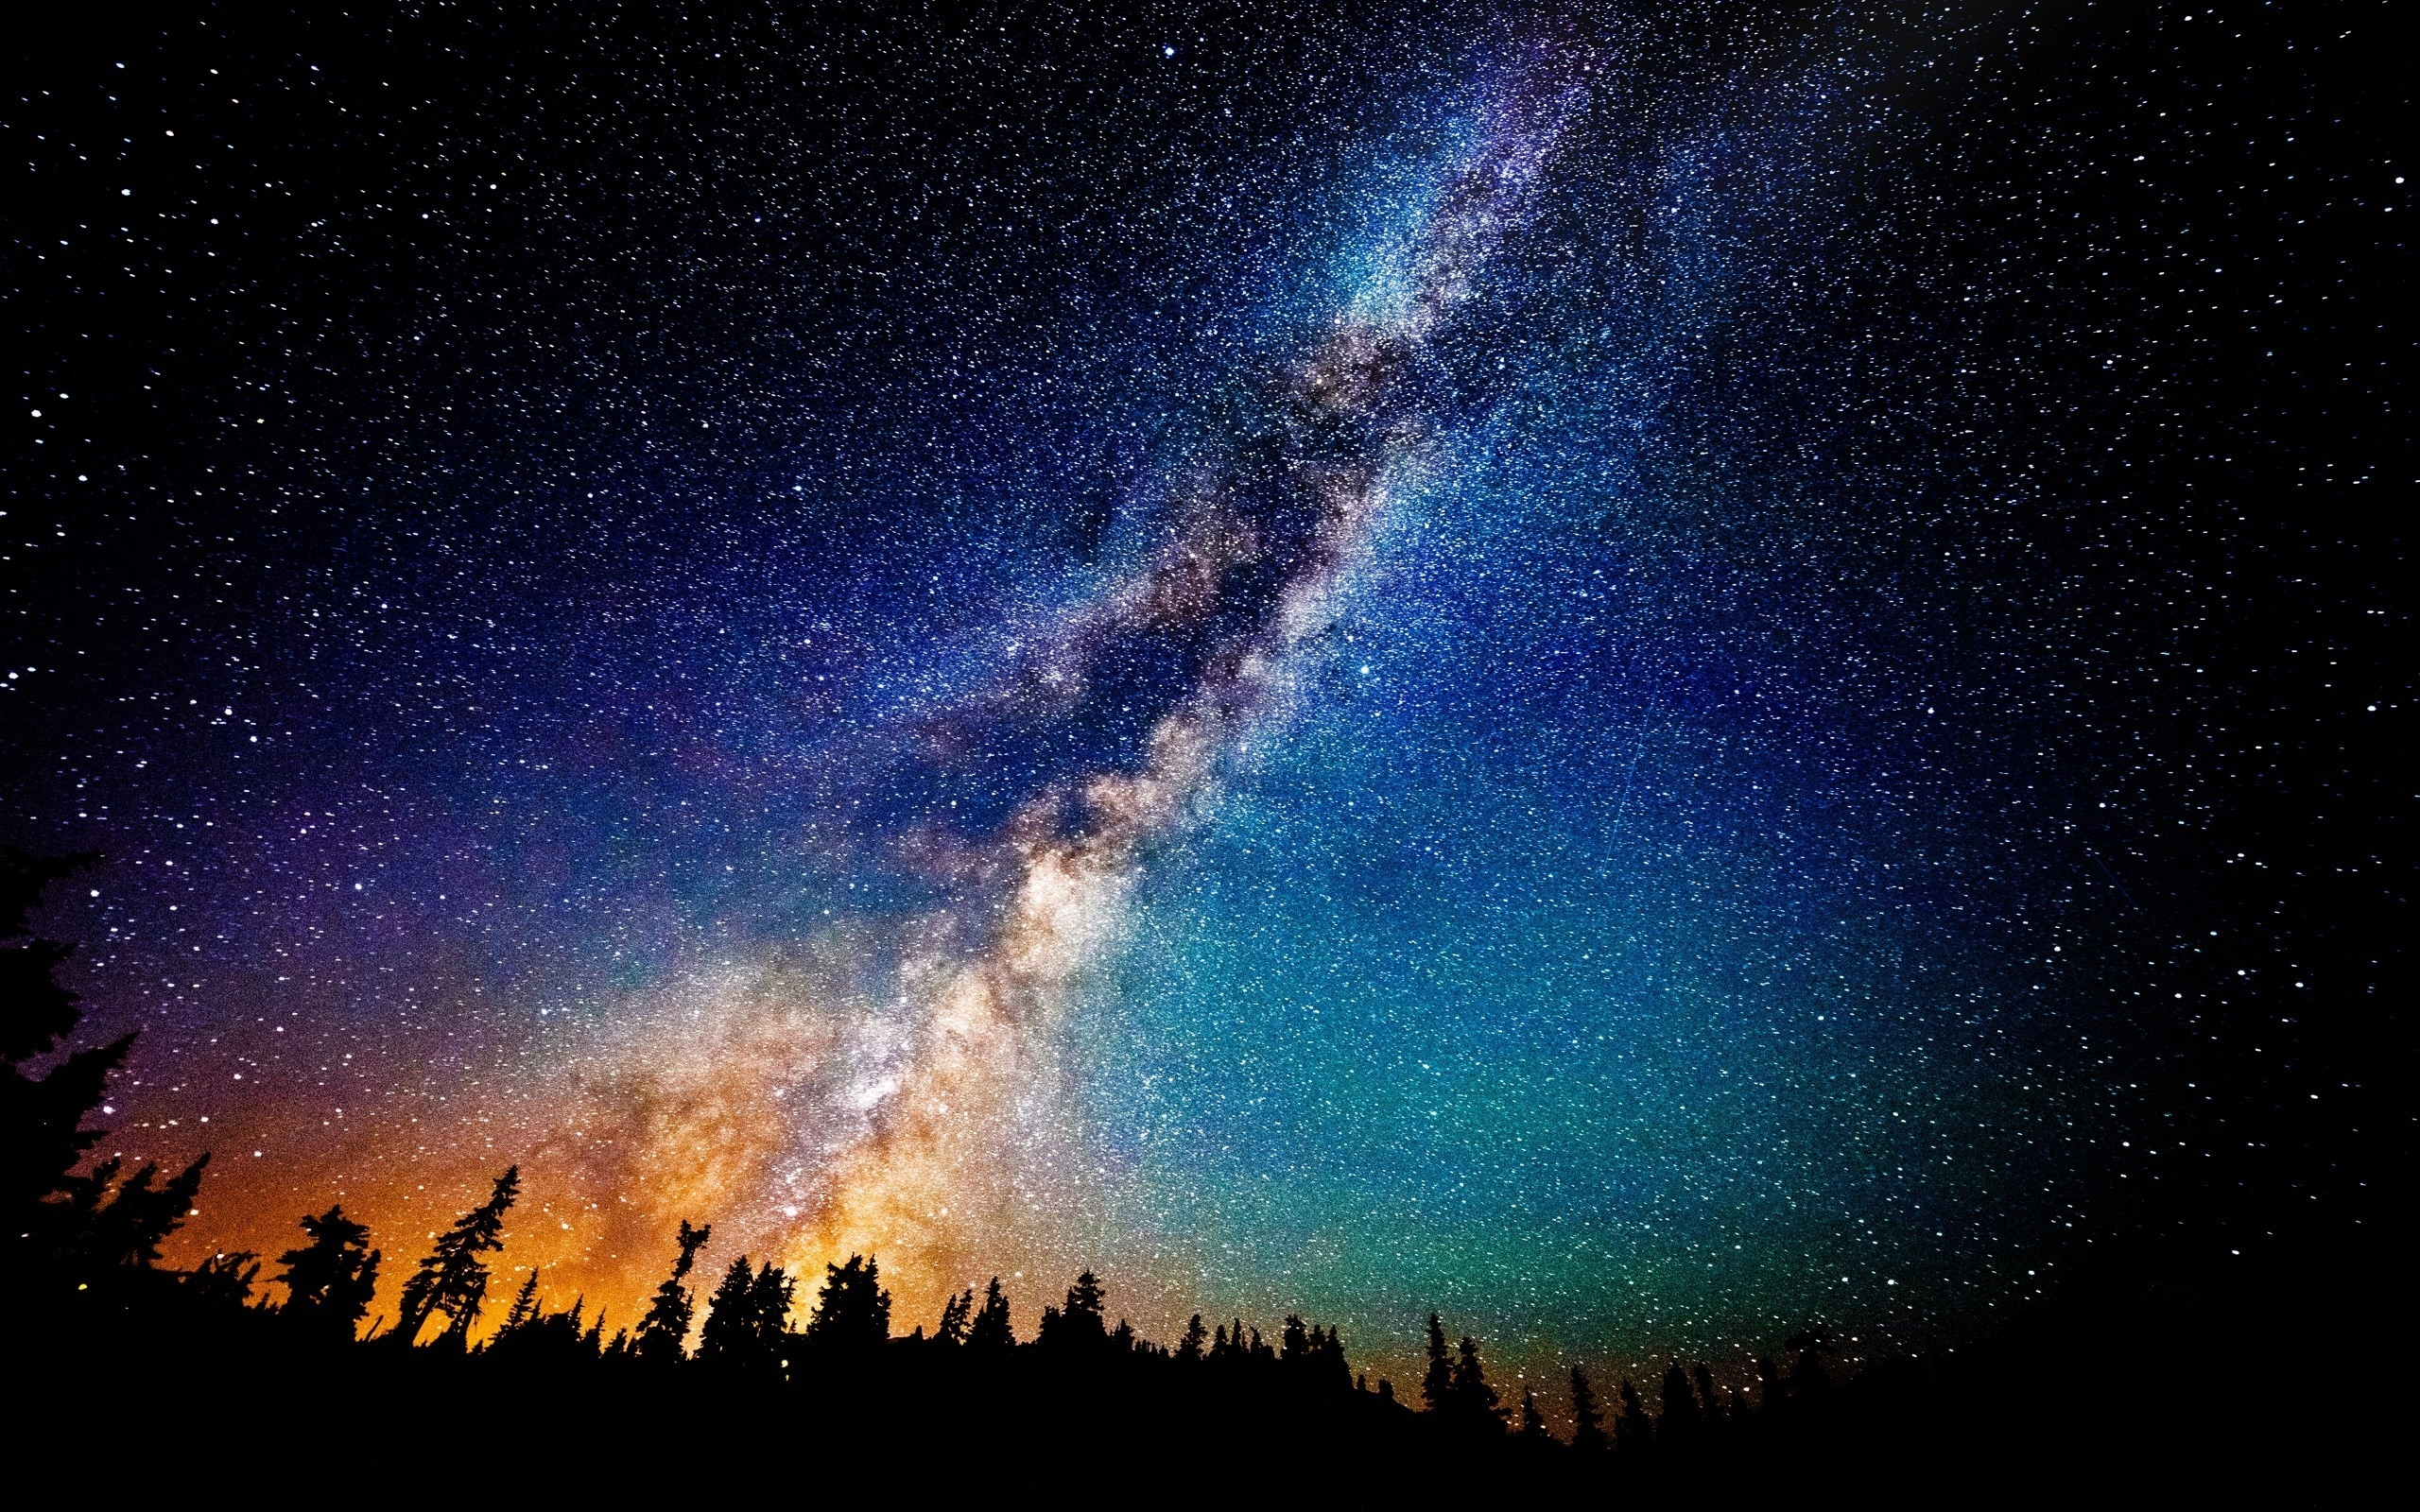 119 milky way hd wallpapers | background images - wallpaper abyss